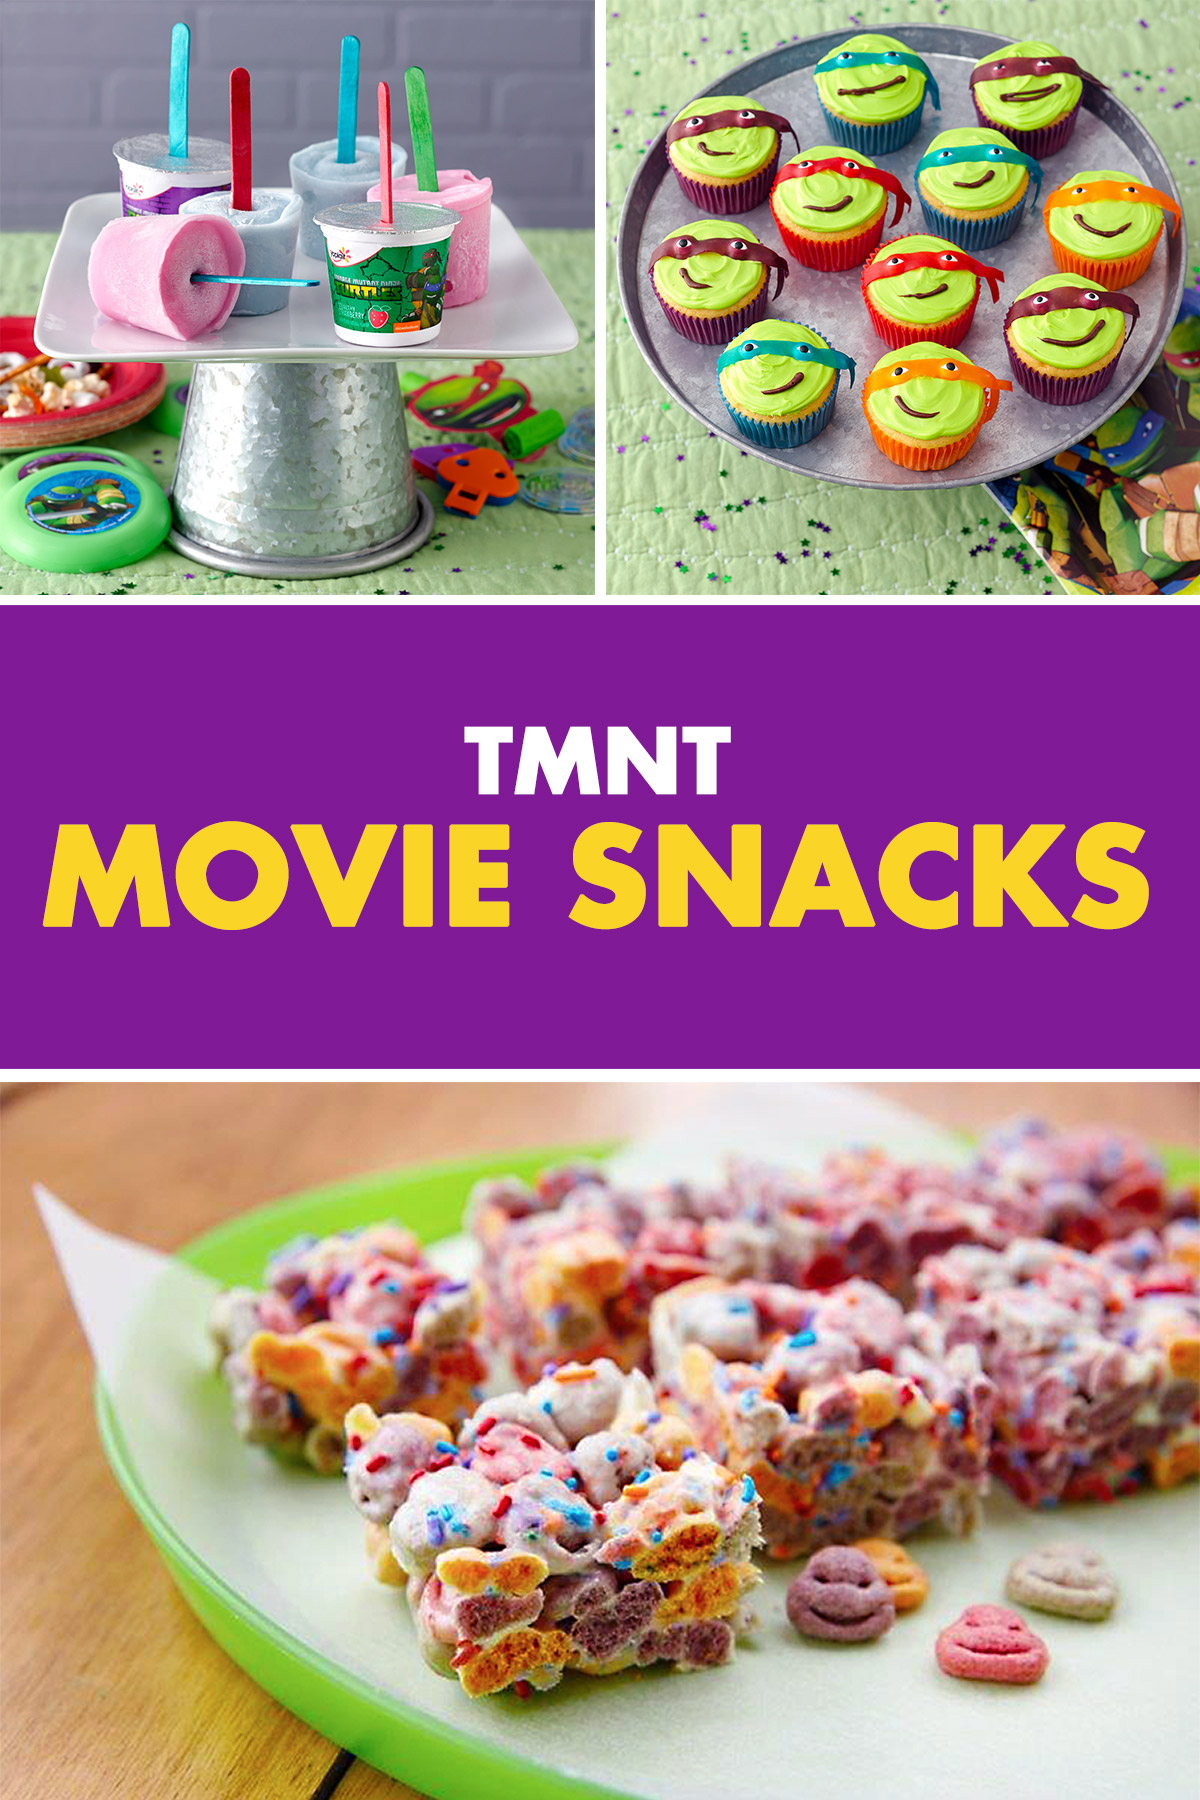 Five Easy-to-Make TMNT Treats